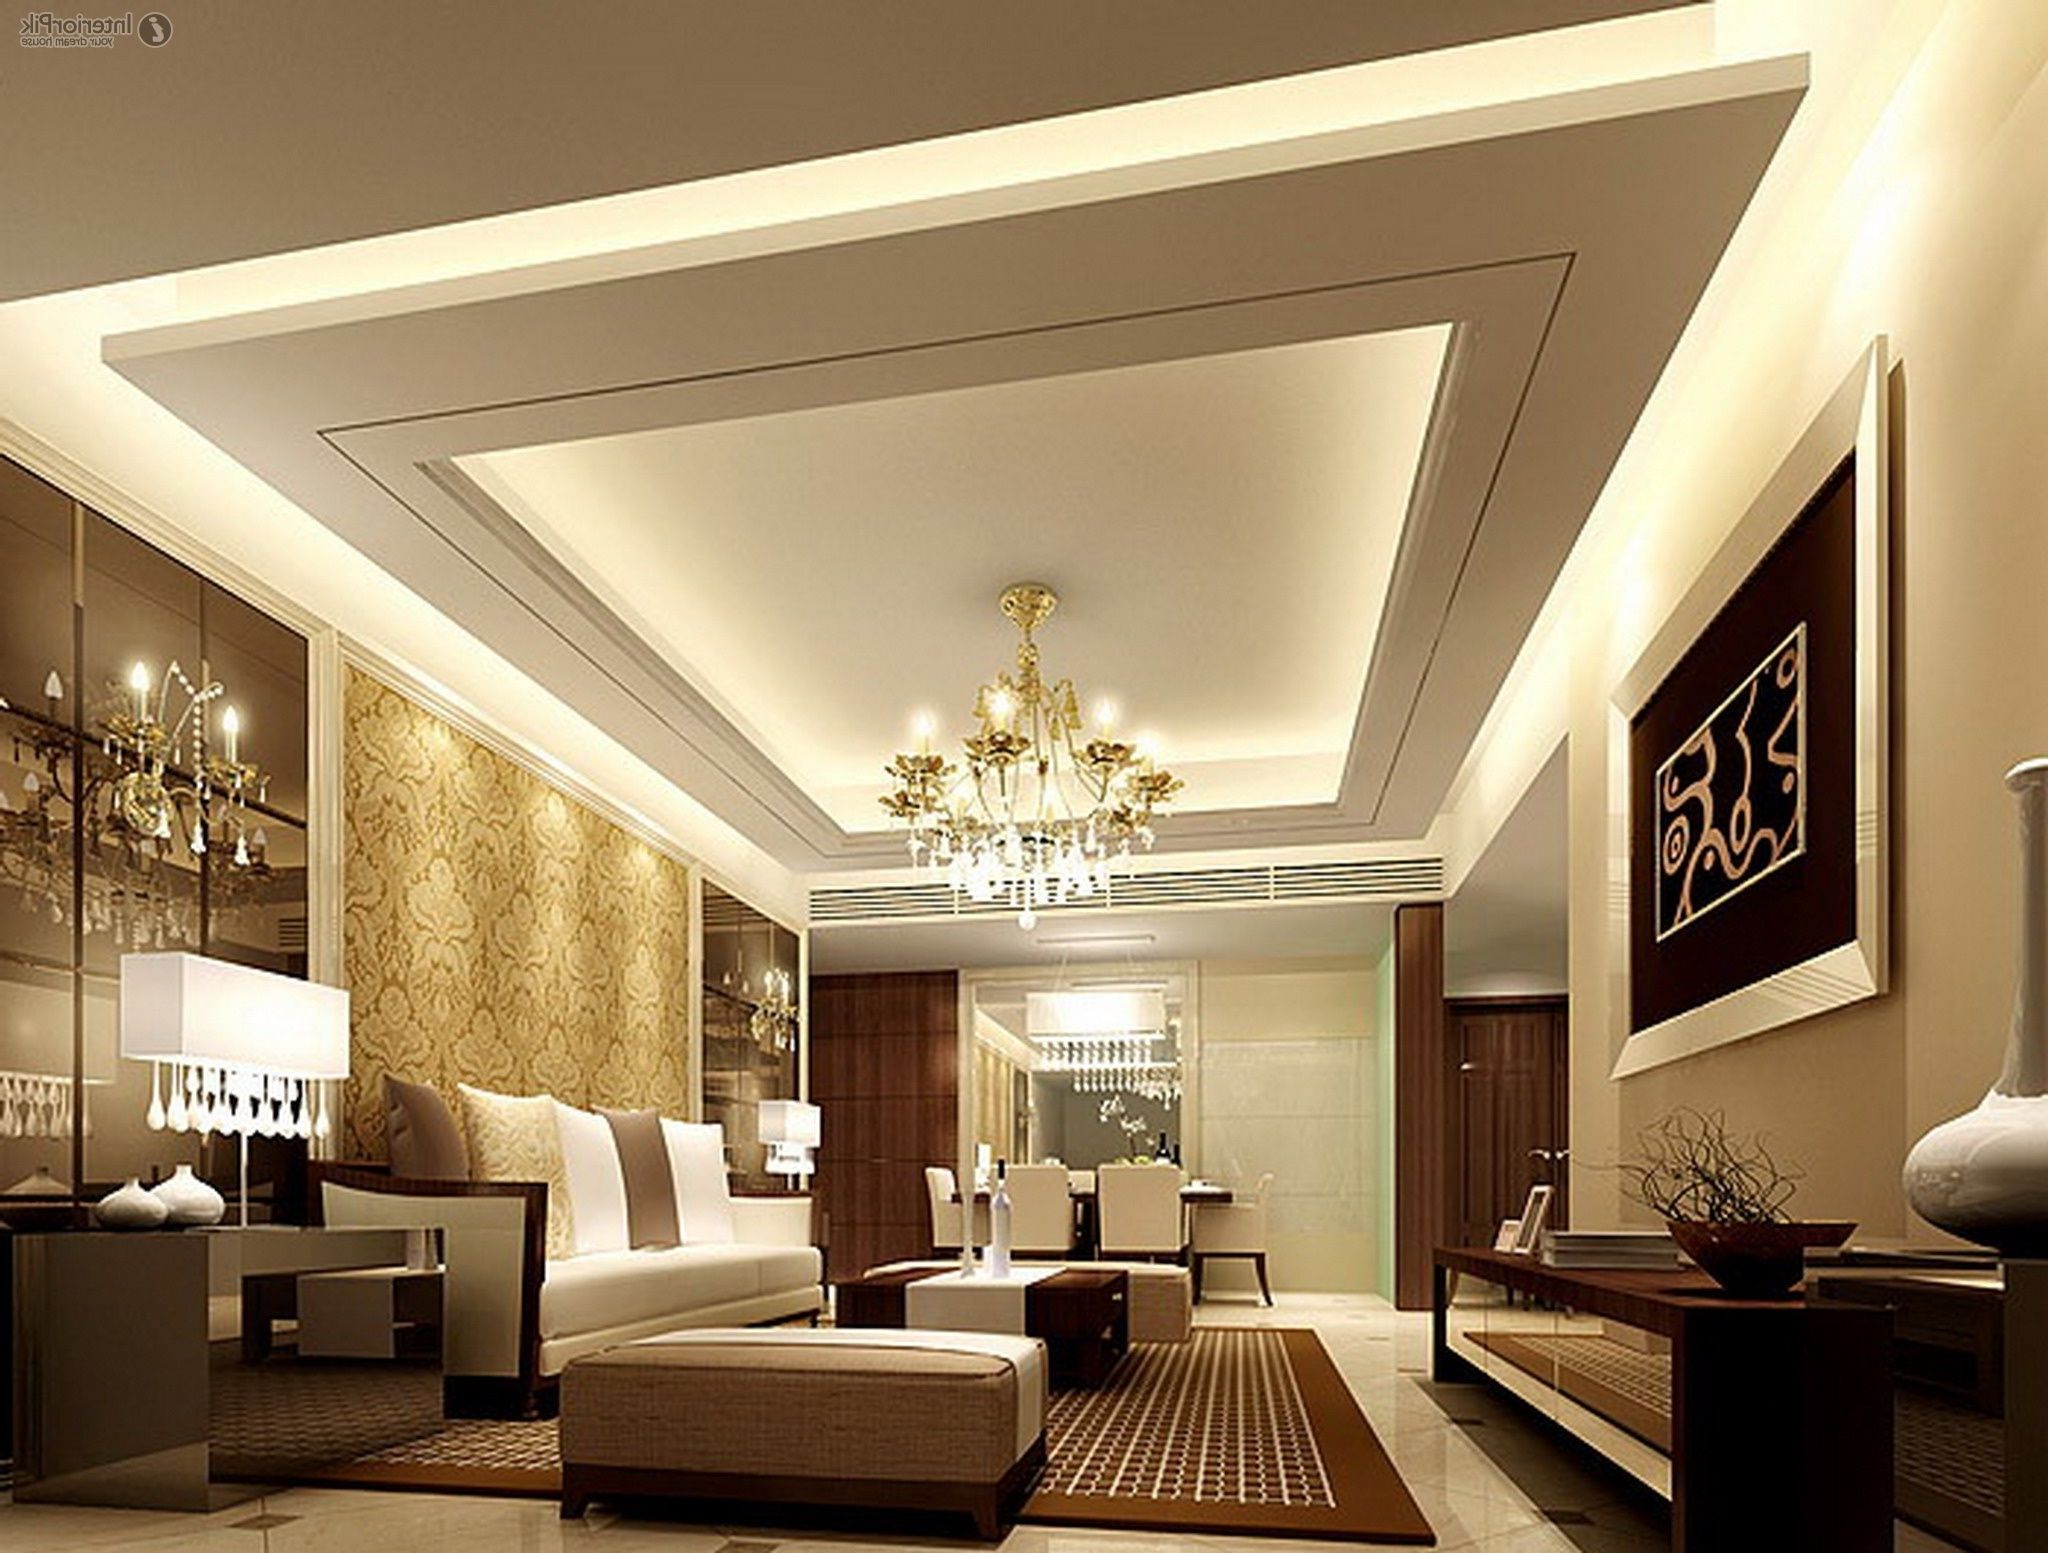 High Quality Gypsum Ceiling Design For Living Room Lighting Home Decorate Best Living  Room Ceiling Design